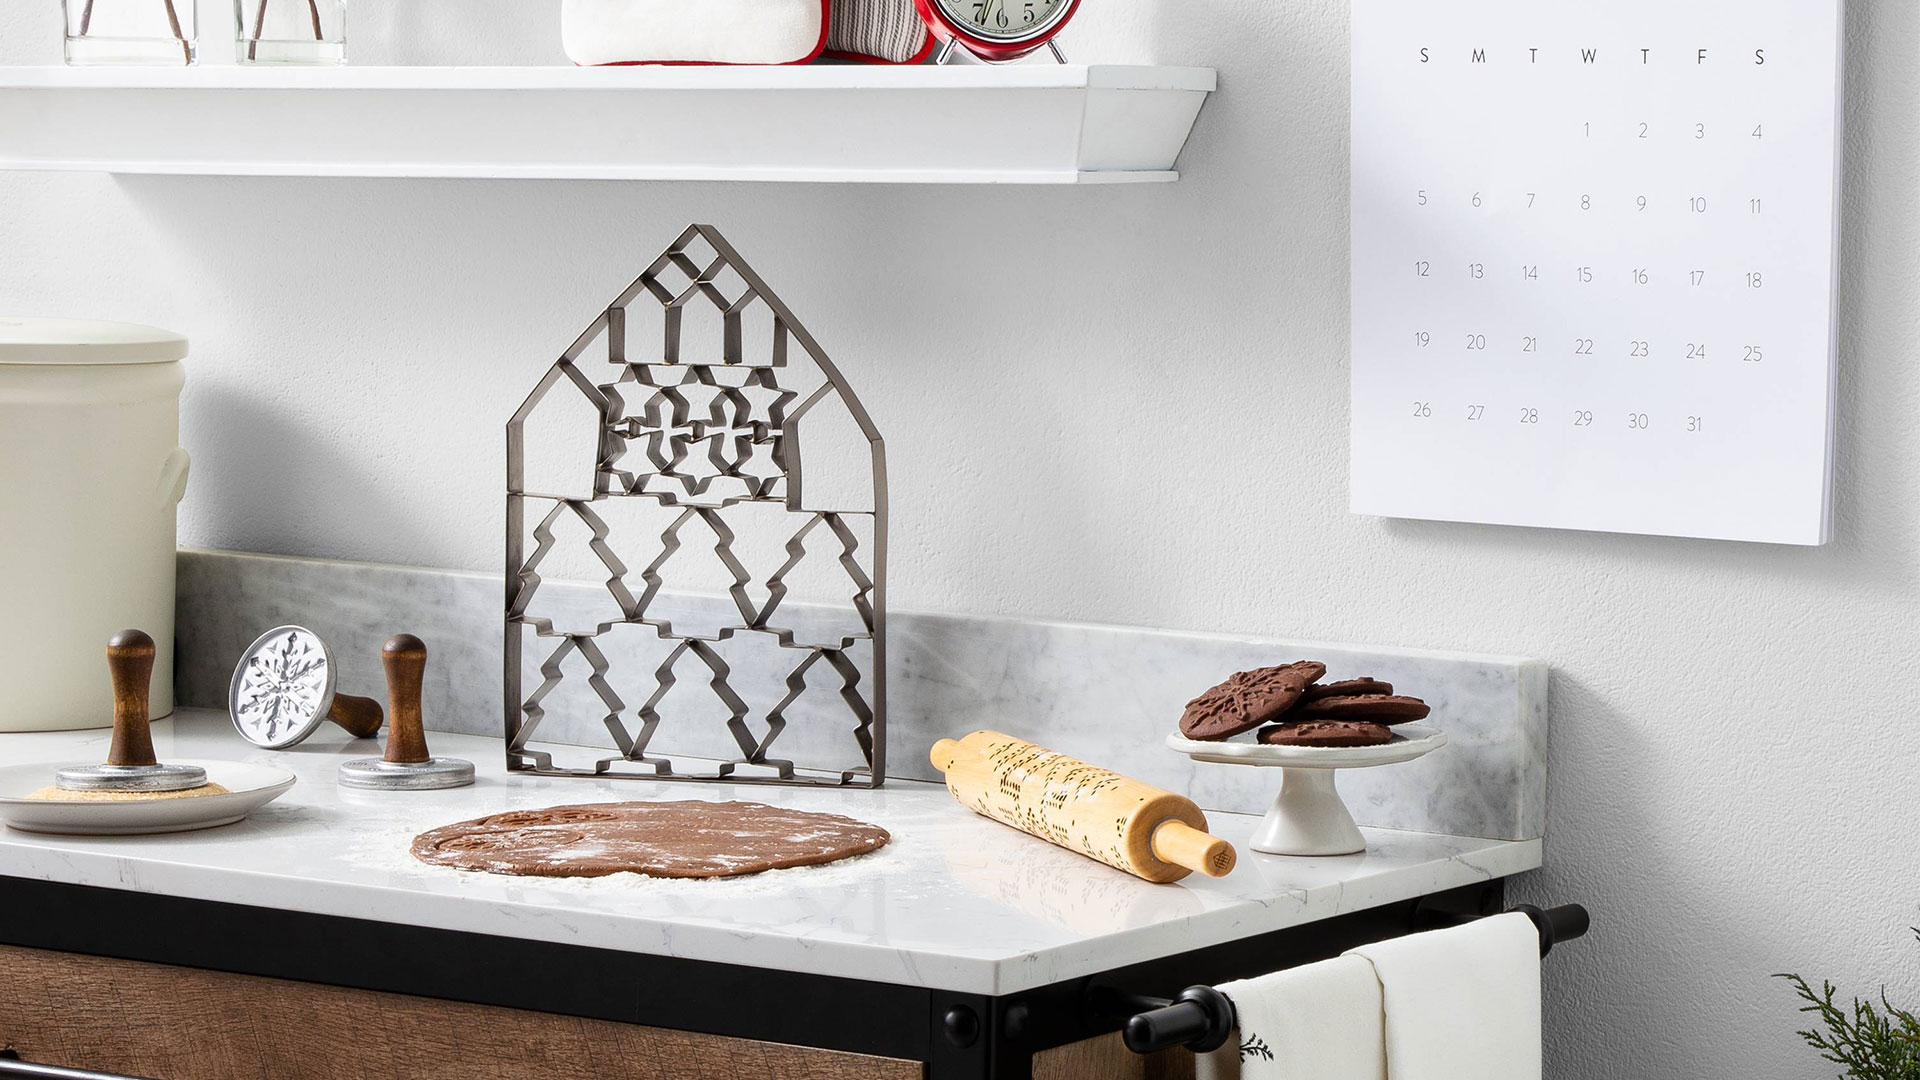 This Giant Cookie Cutter Lets You Make 24 Cookies at Once